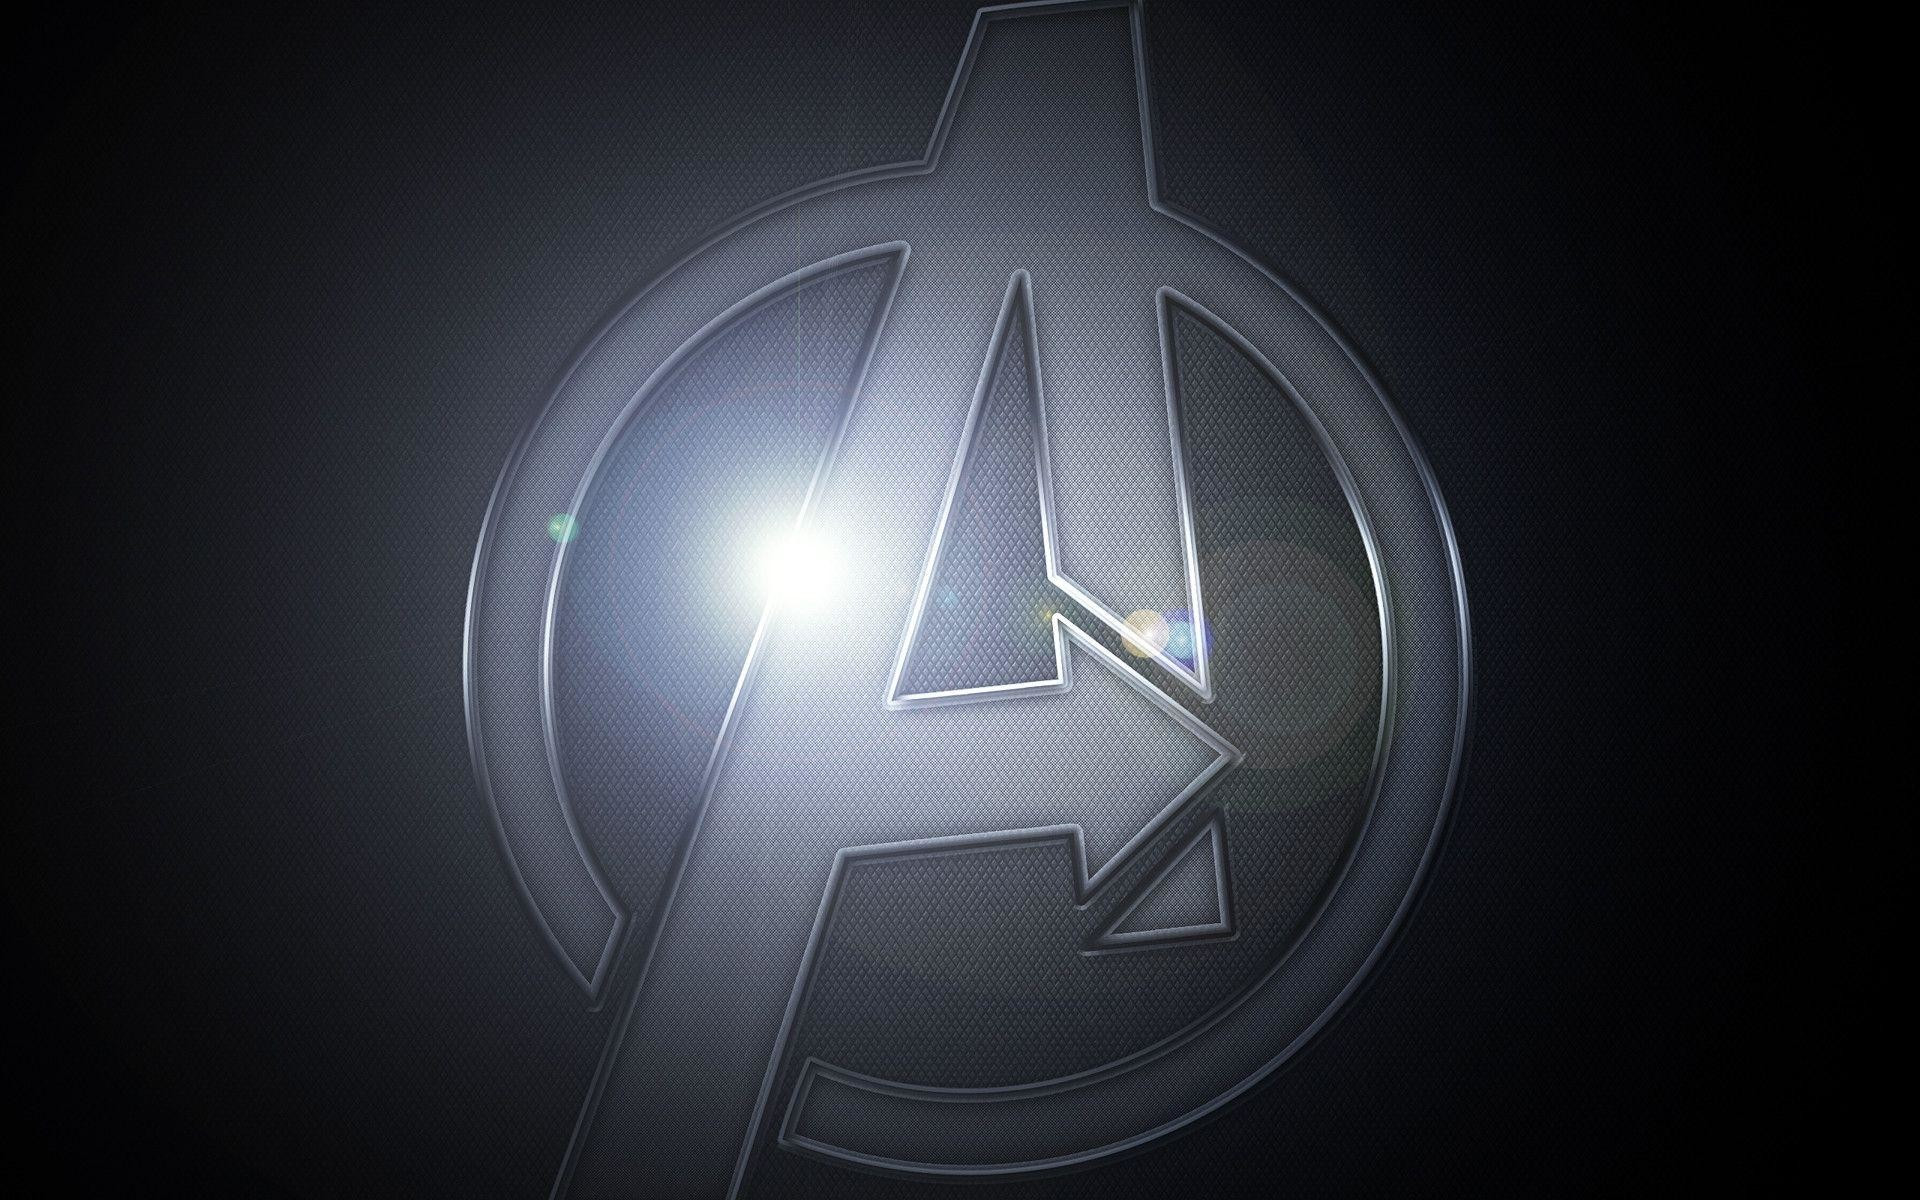 1920x1200 Marvel's The Avengers HD Logo Wallpaper - HD Wallpapers Free .